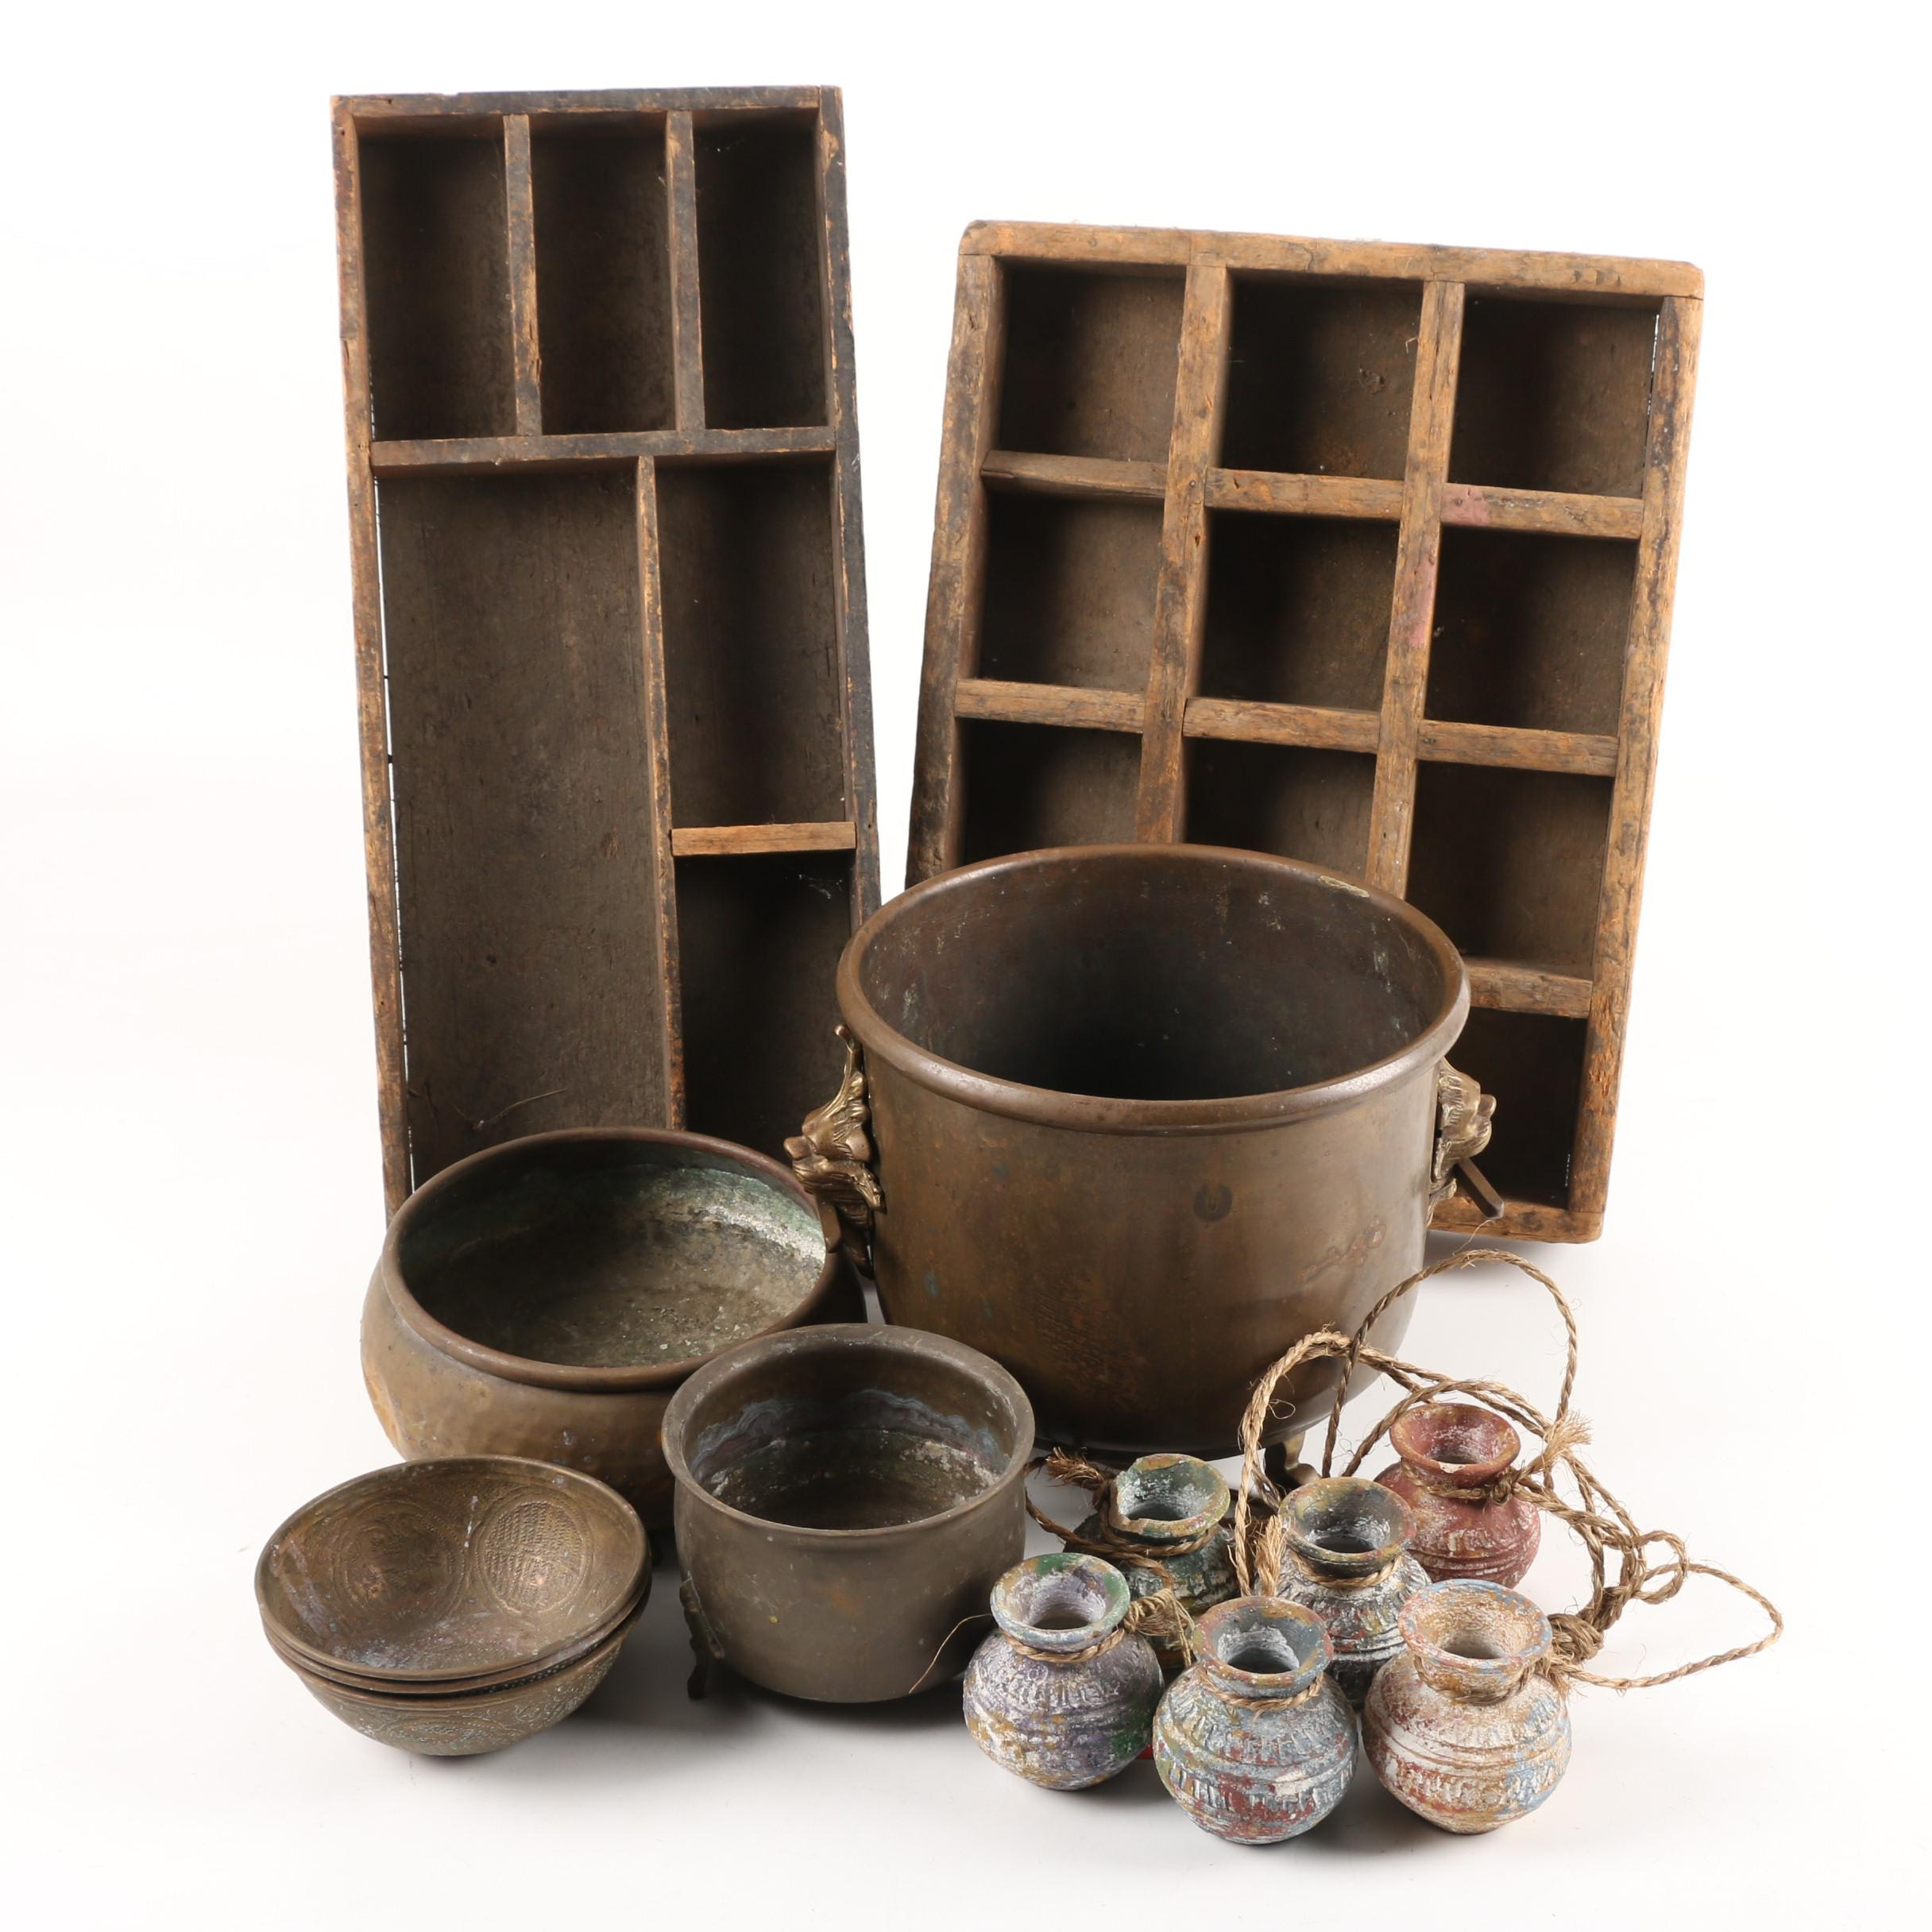 Hanging Clay Pots,Typesetter Trays, Brass Planter and Bowls